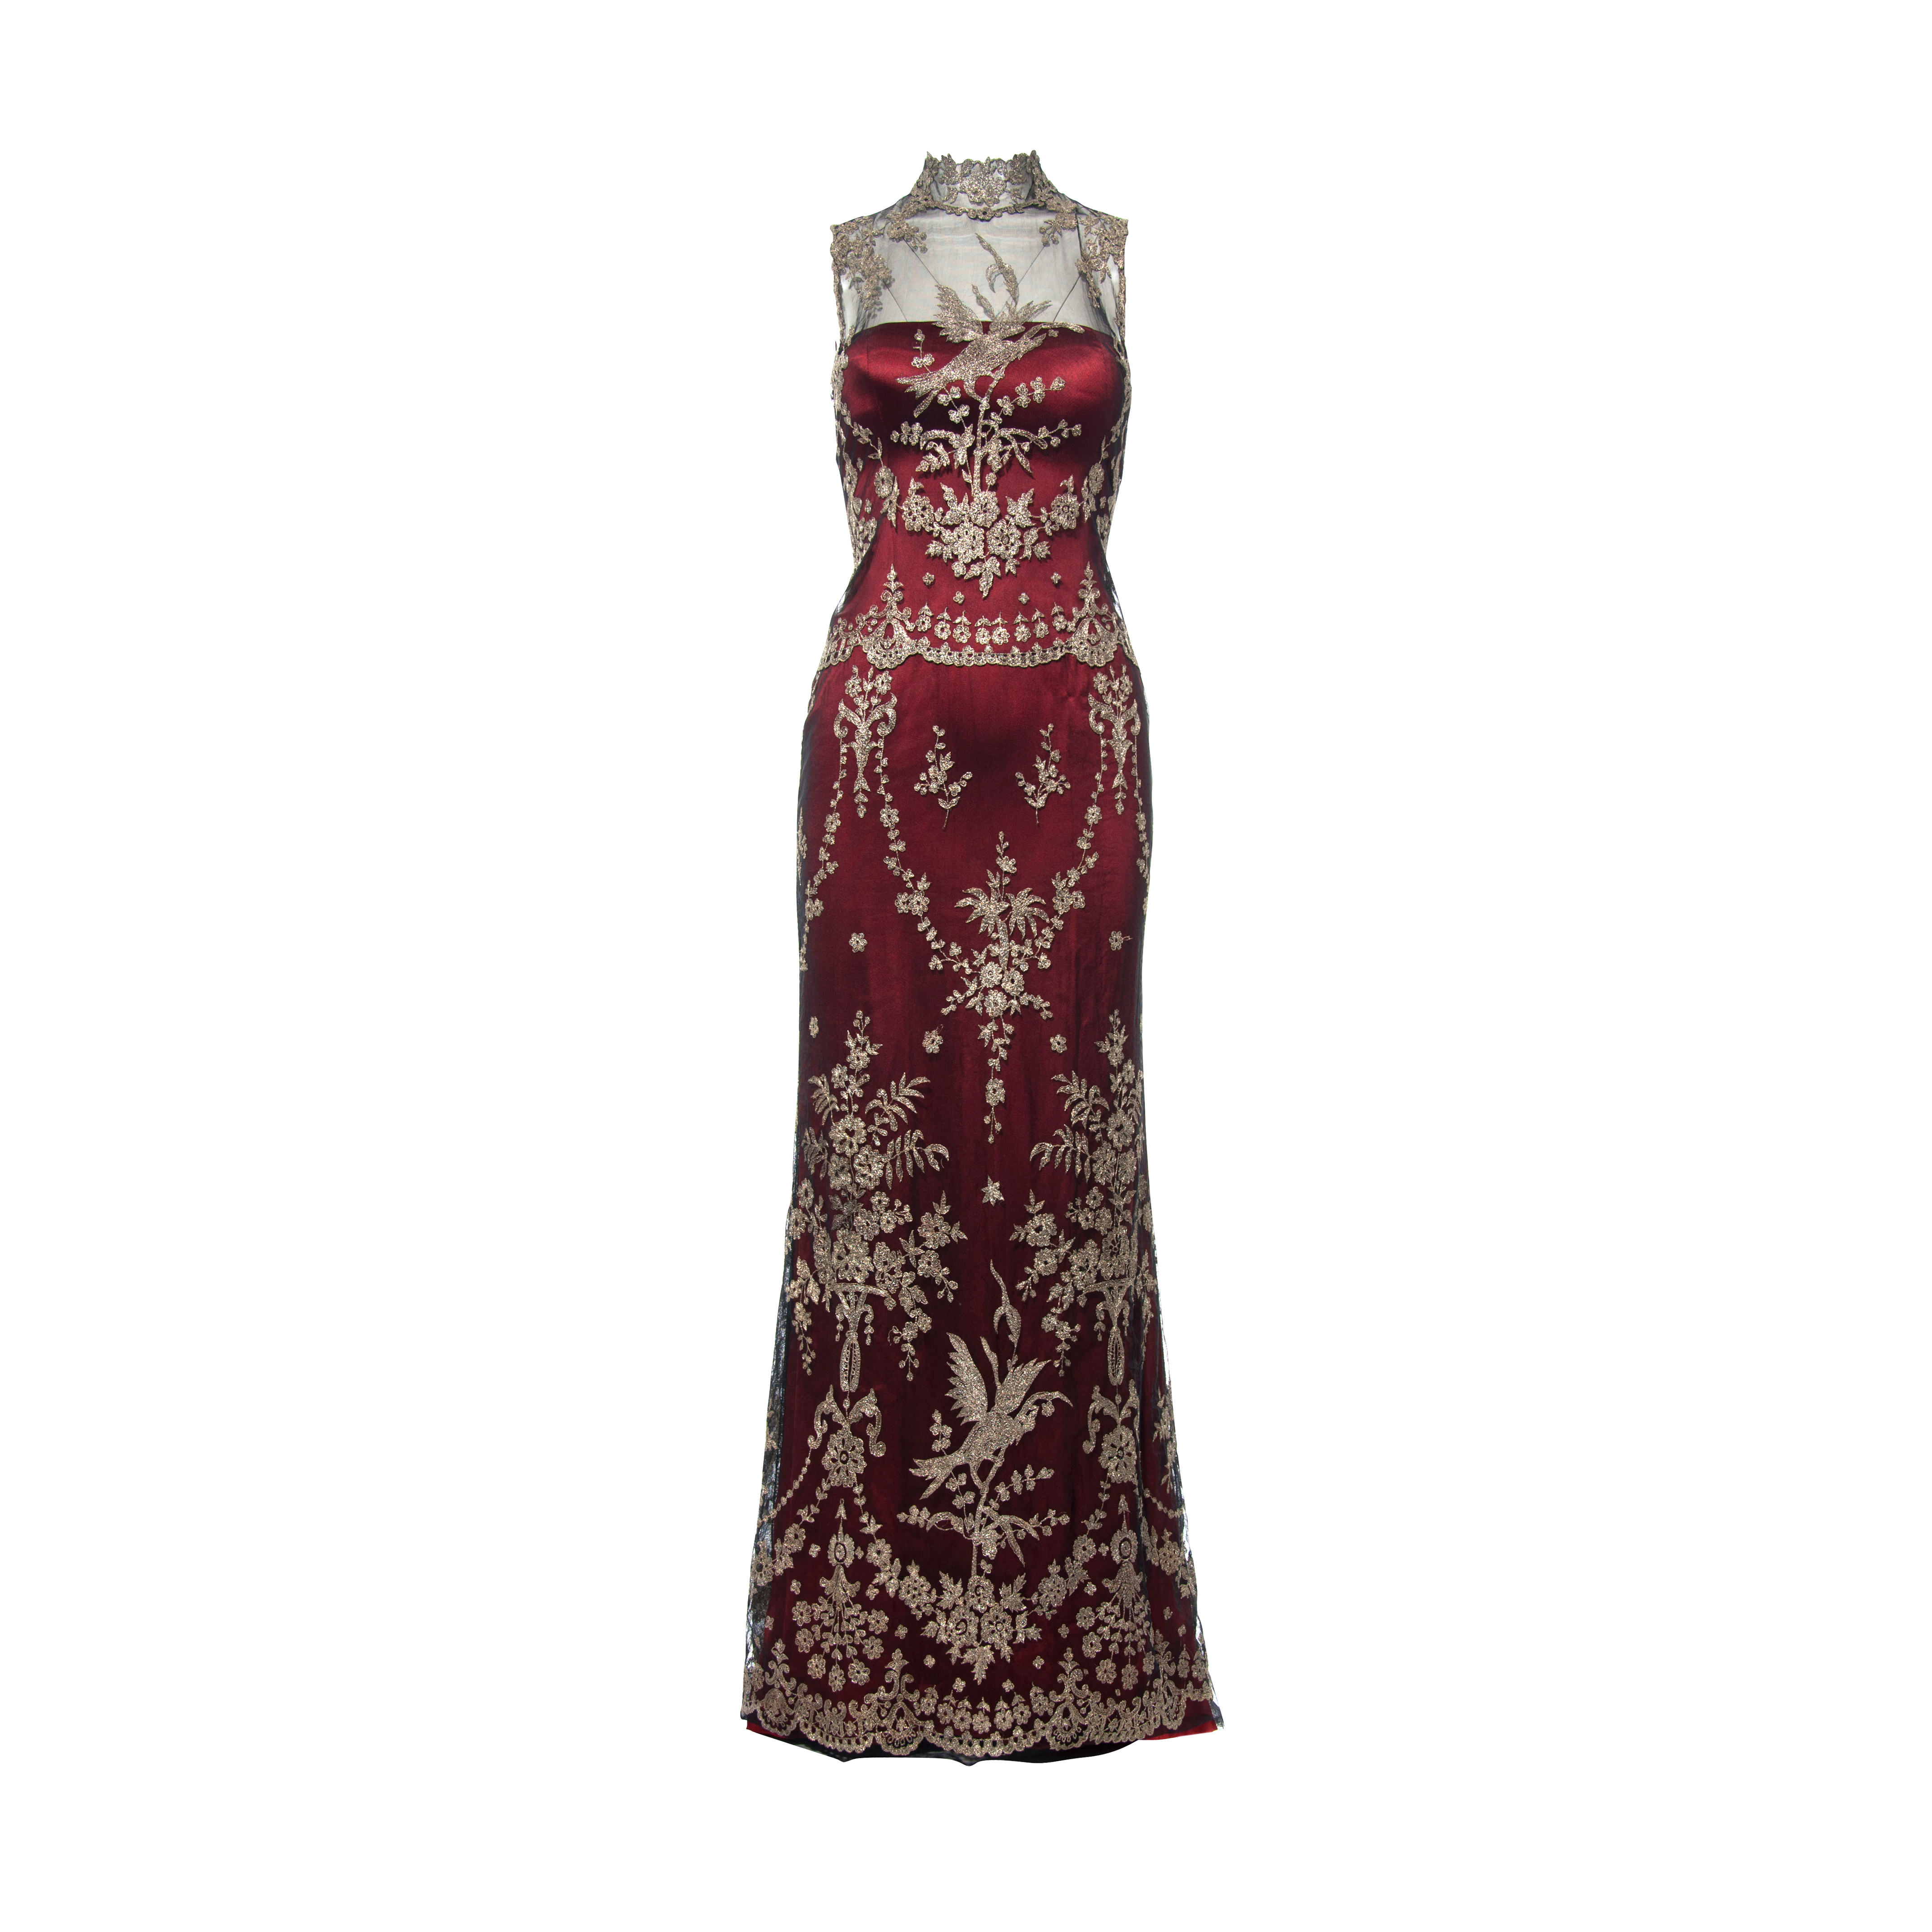 f1d97a4be5a71 Authentic Second Hand Vera Wang Embroidered Lace Dress (PSS-265-00117) |  THE FIFTH COLLECTION